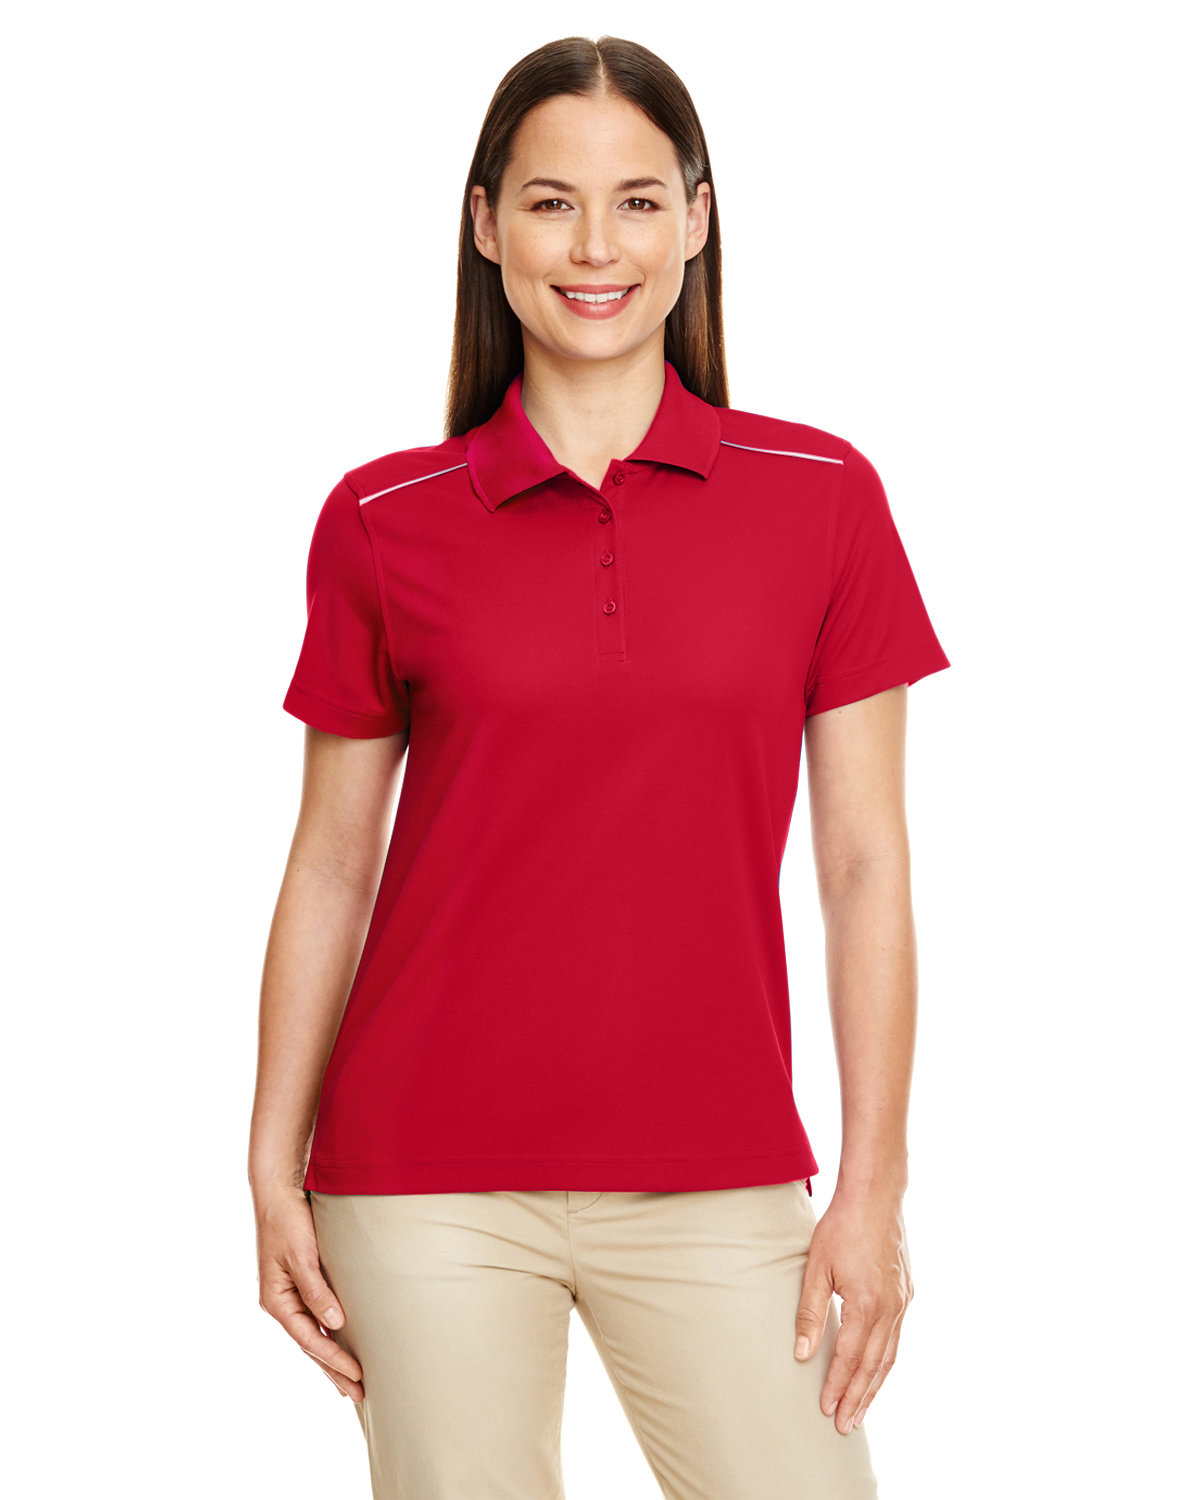 Core 365 Ladies' Radiant Performance Piqué Polo with Reflective Piping CLASSIC RED